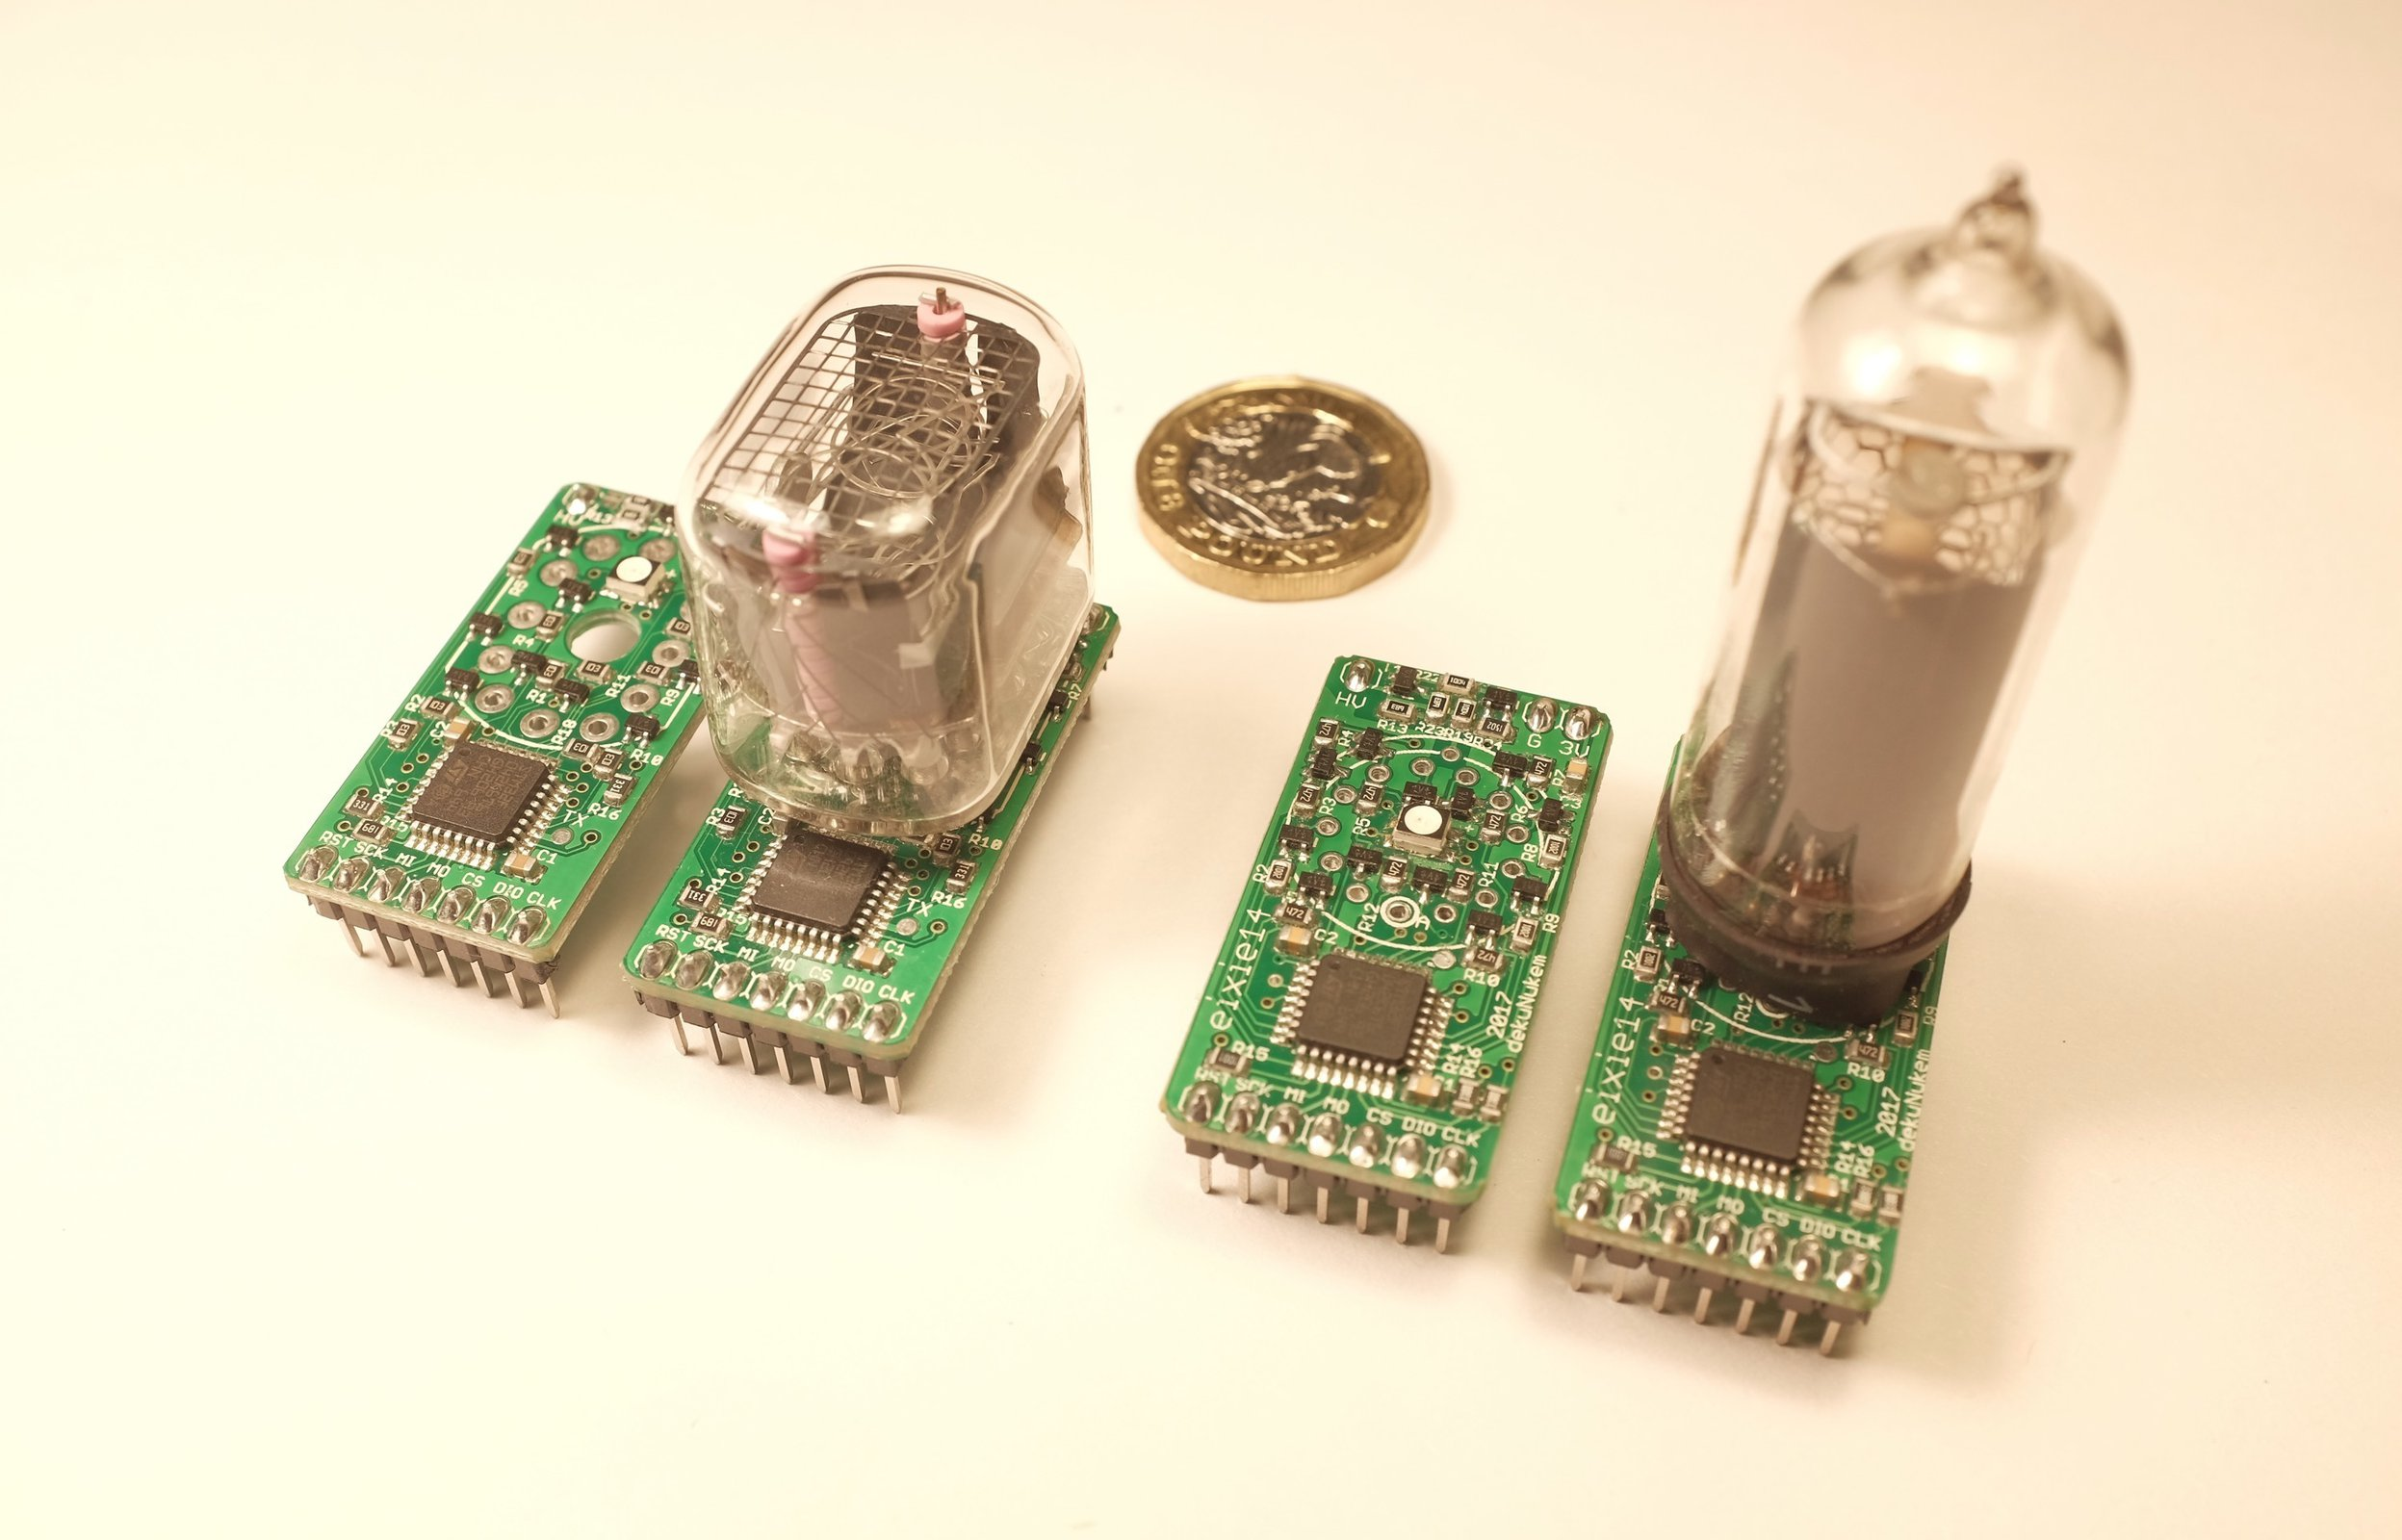 Exixe Miniture Nixie Tube Driver Modules From Dekunukem On Tindie Schematic Of My 6 Digit Clock Here Are Some Photos 2